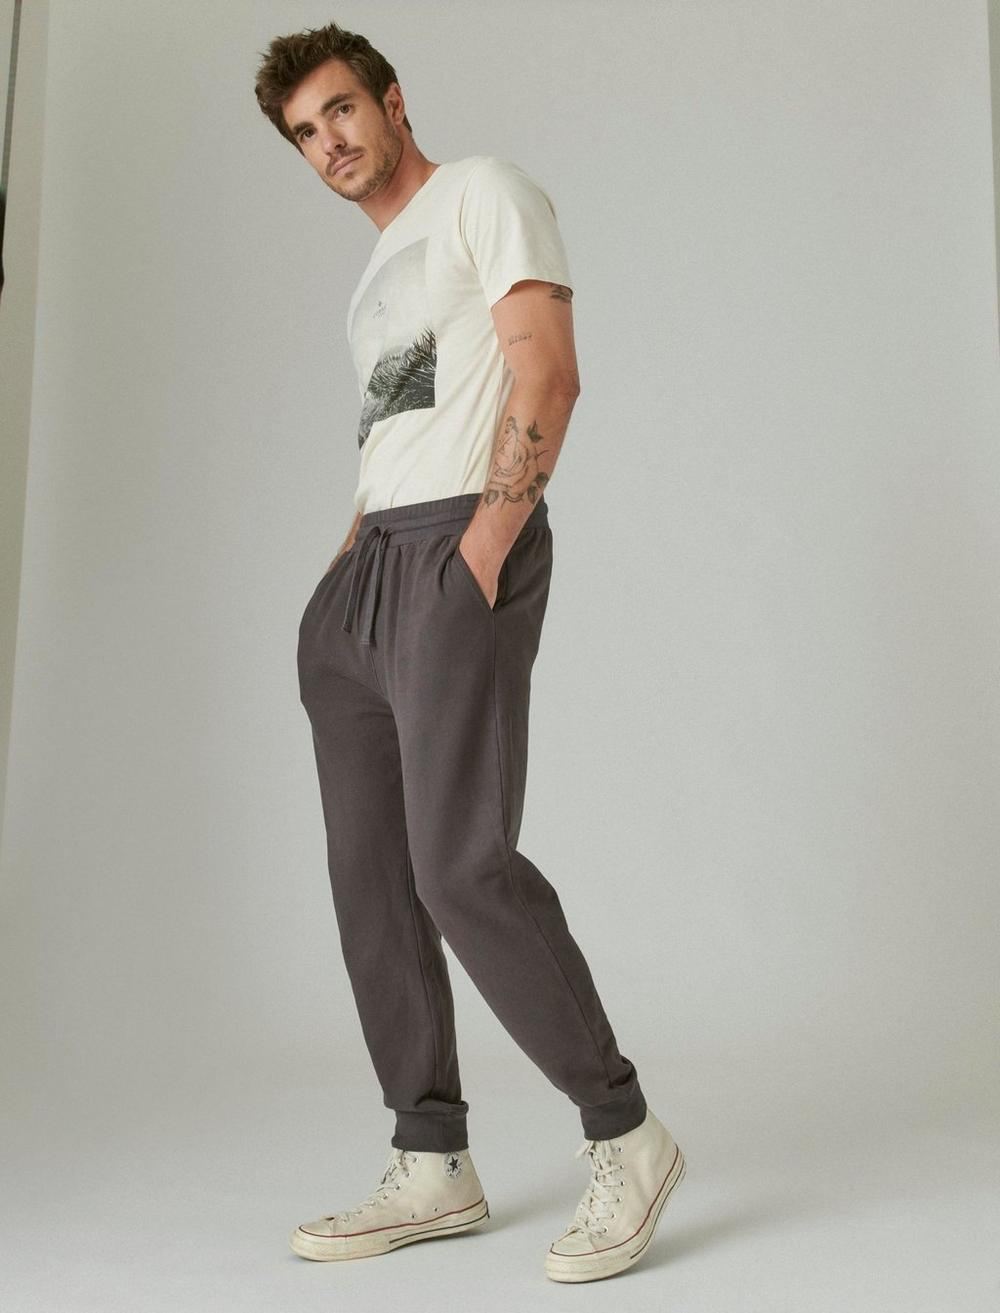 SUEDED FRENCH TERRY JOGGER PANT, image 2